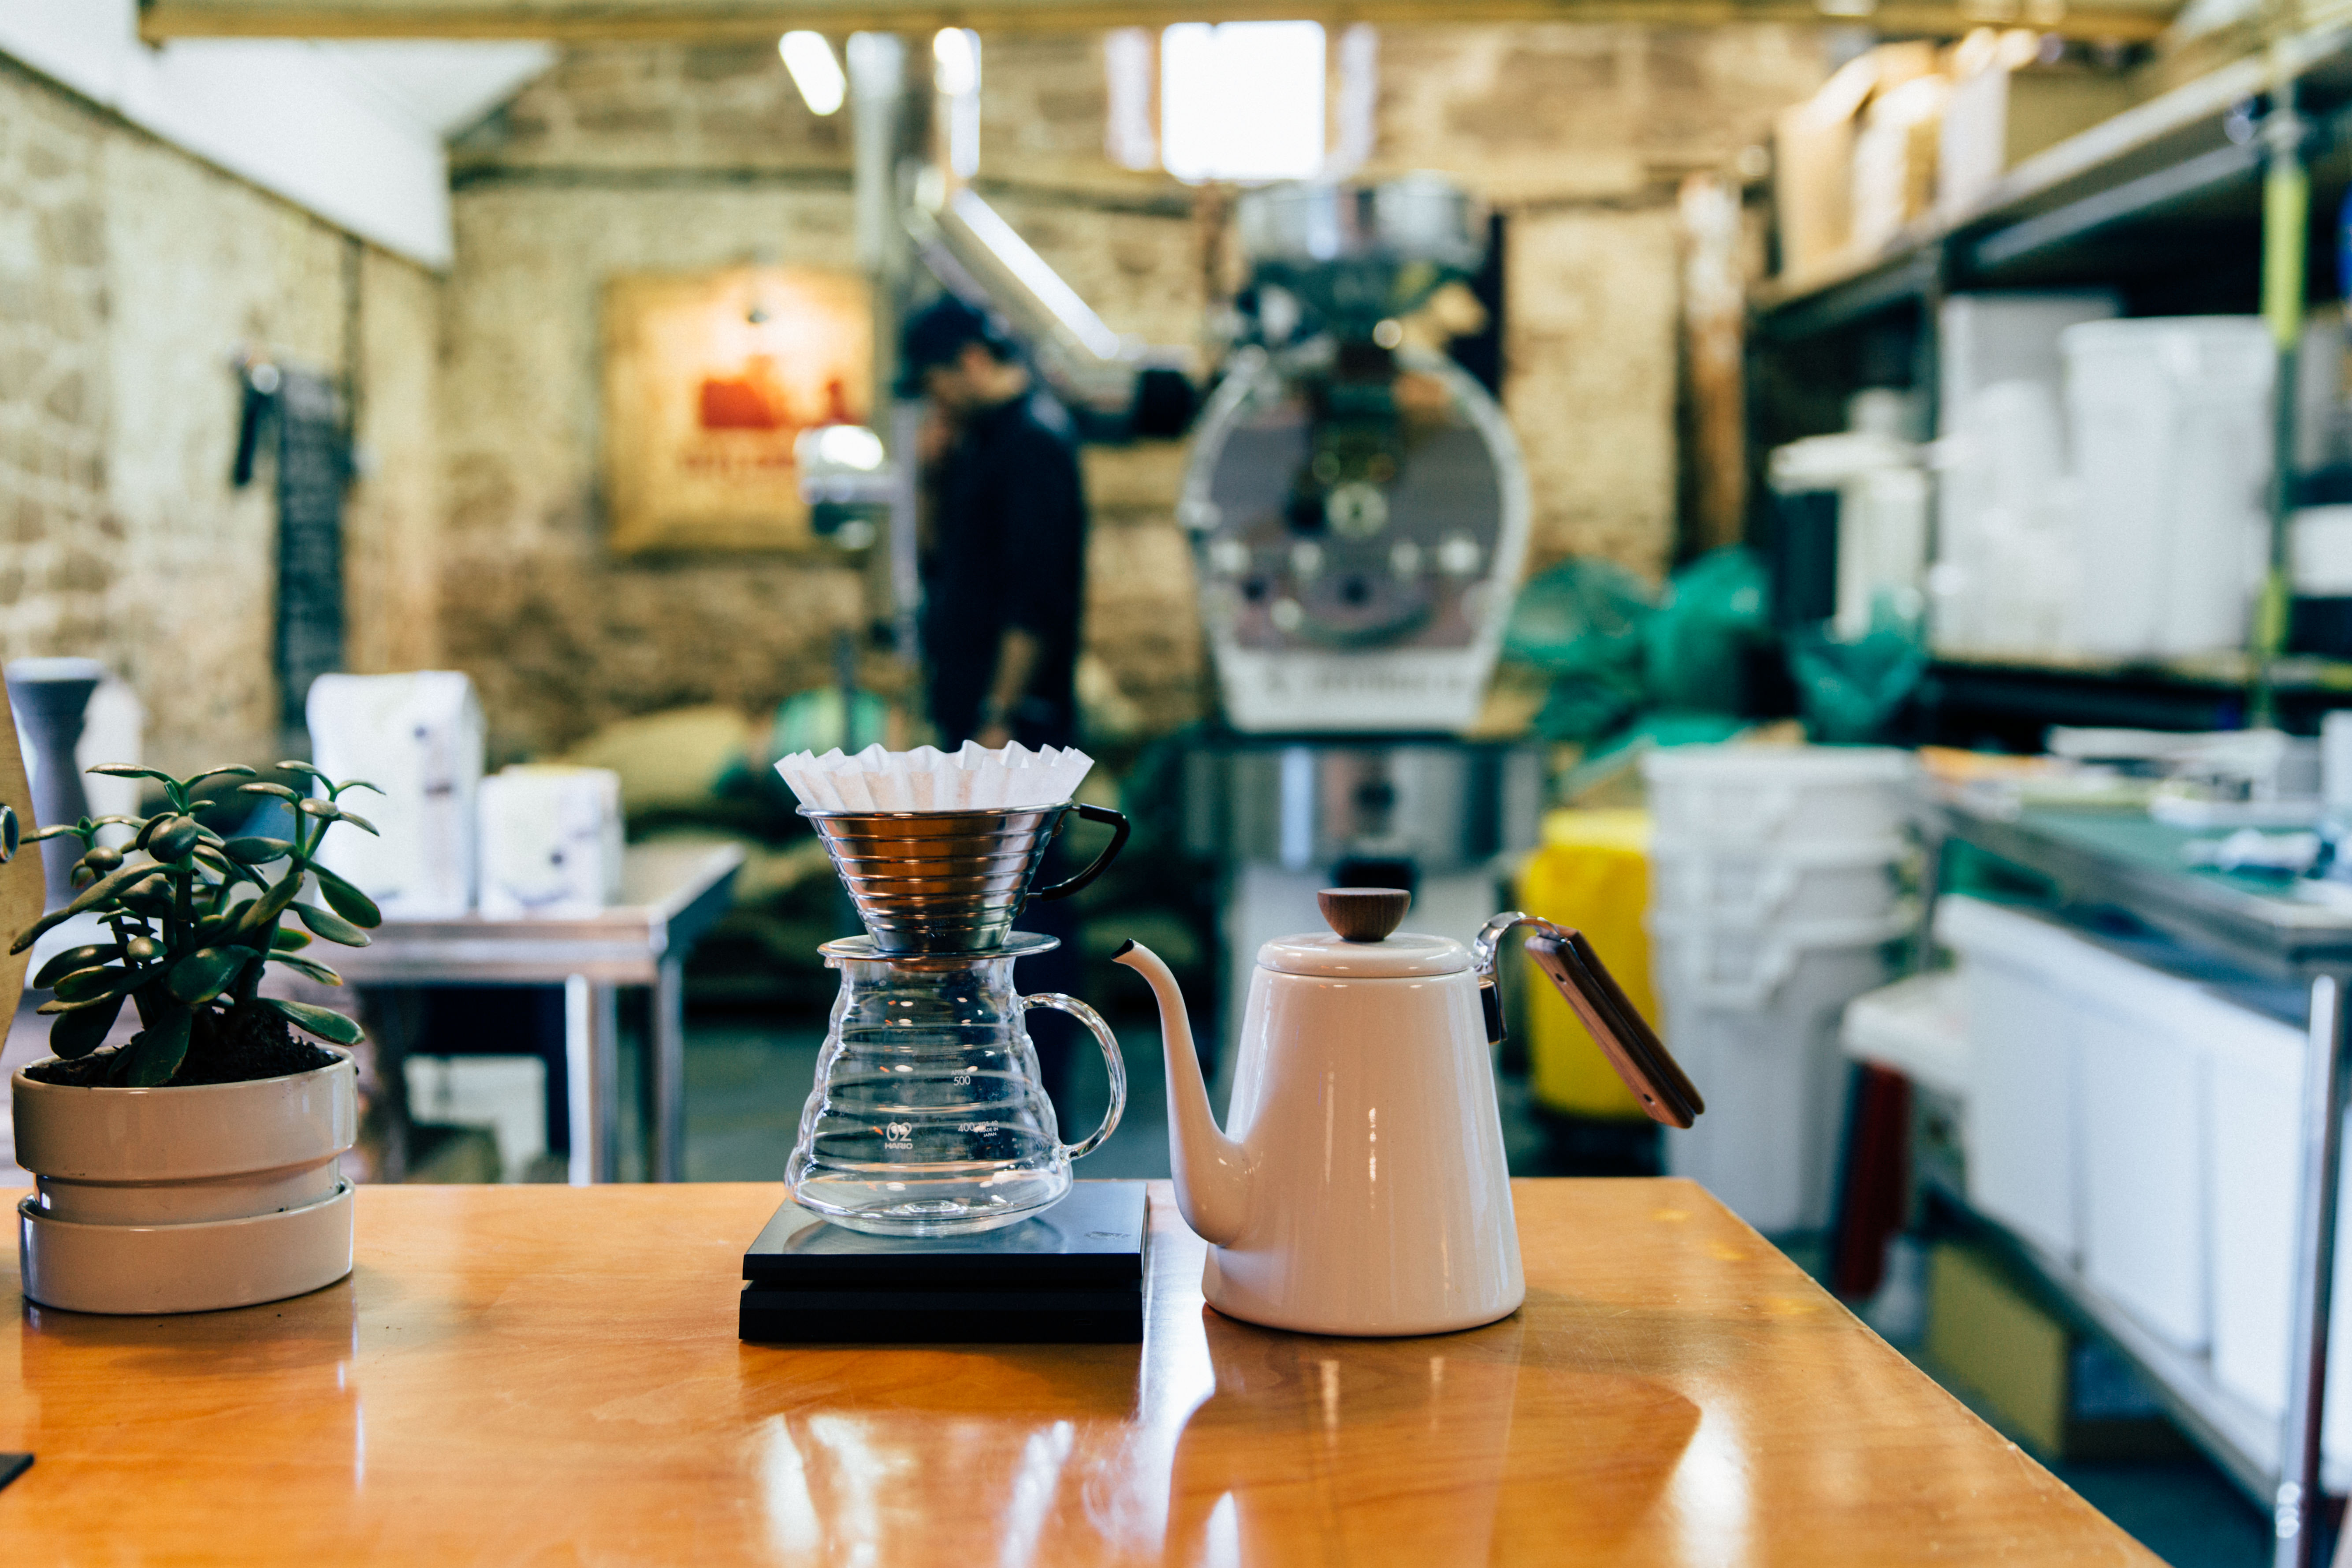 roasters/hundred-house-coffee/images/1y6c-hundred-house-coffee.jpg